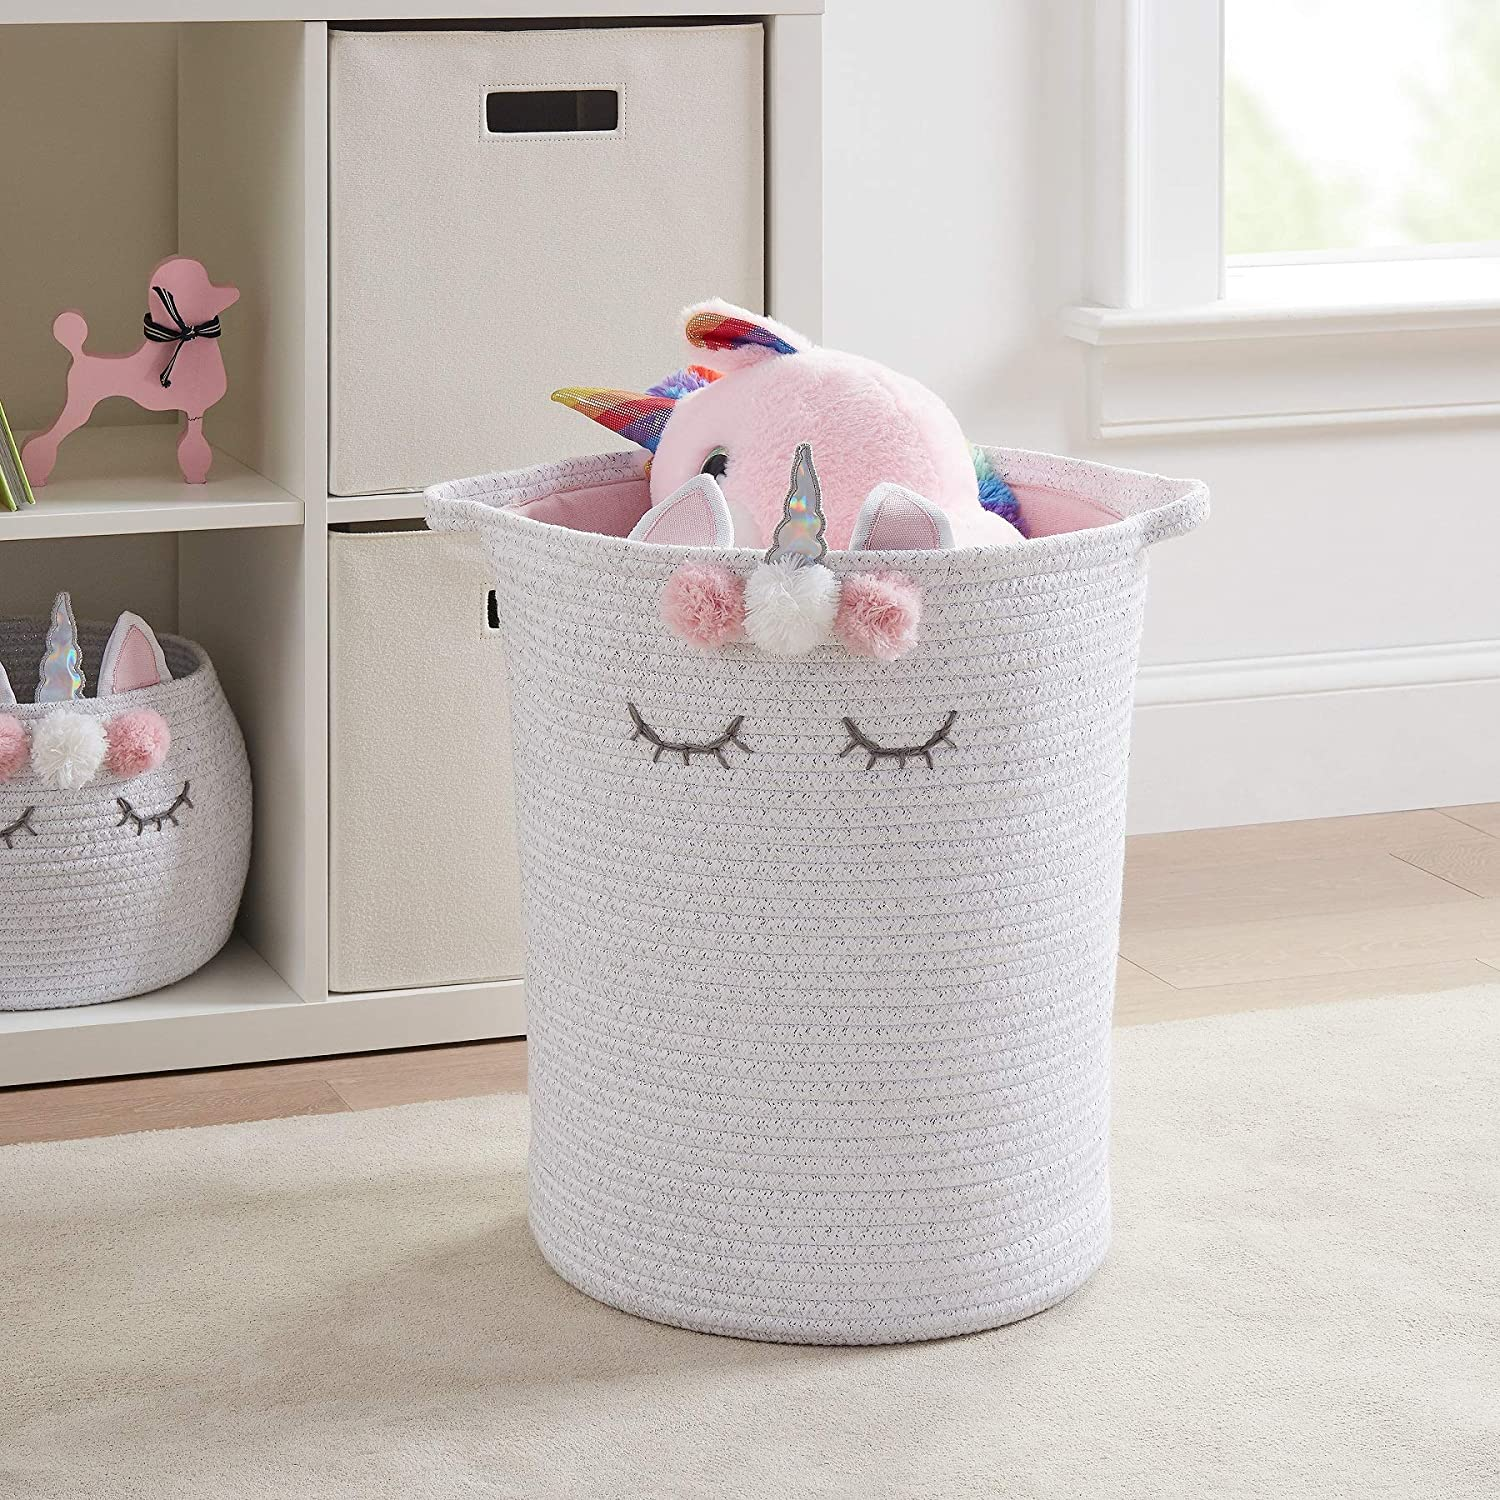 JN Better Homes & Gardens Round Tapered Cotton Rope Laundry Hamper with Drawstring Liner - Unicorn.